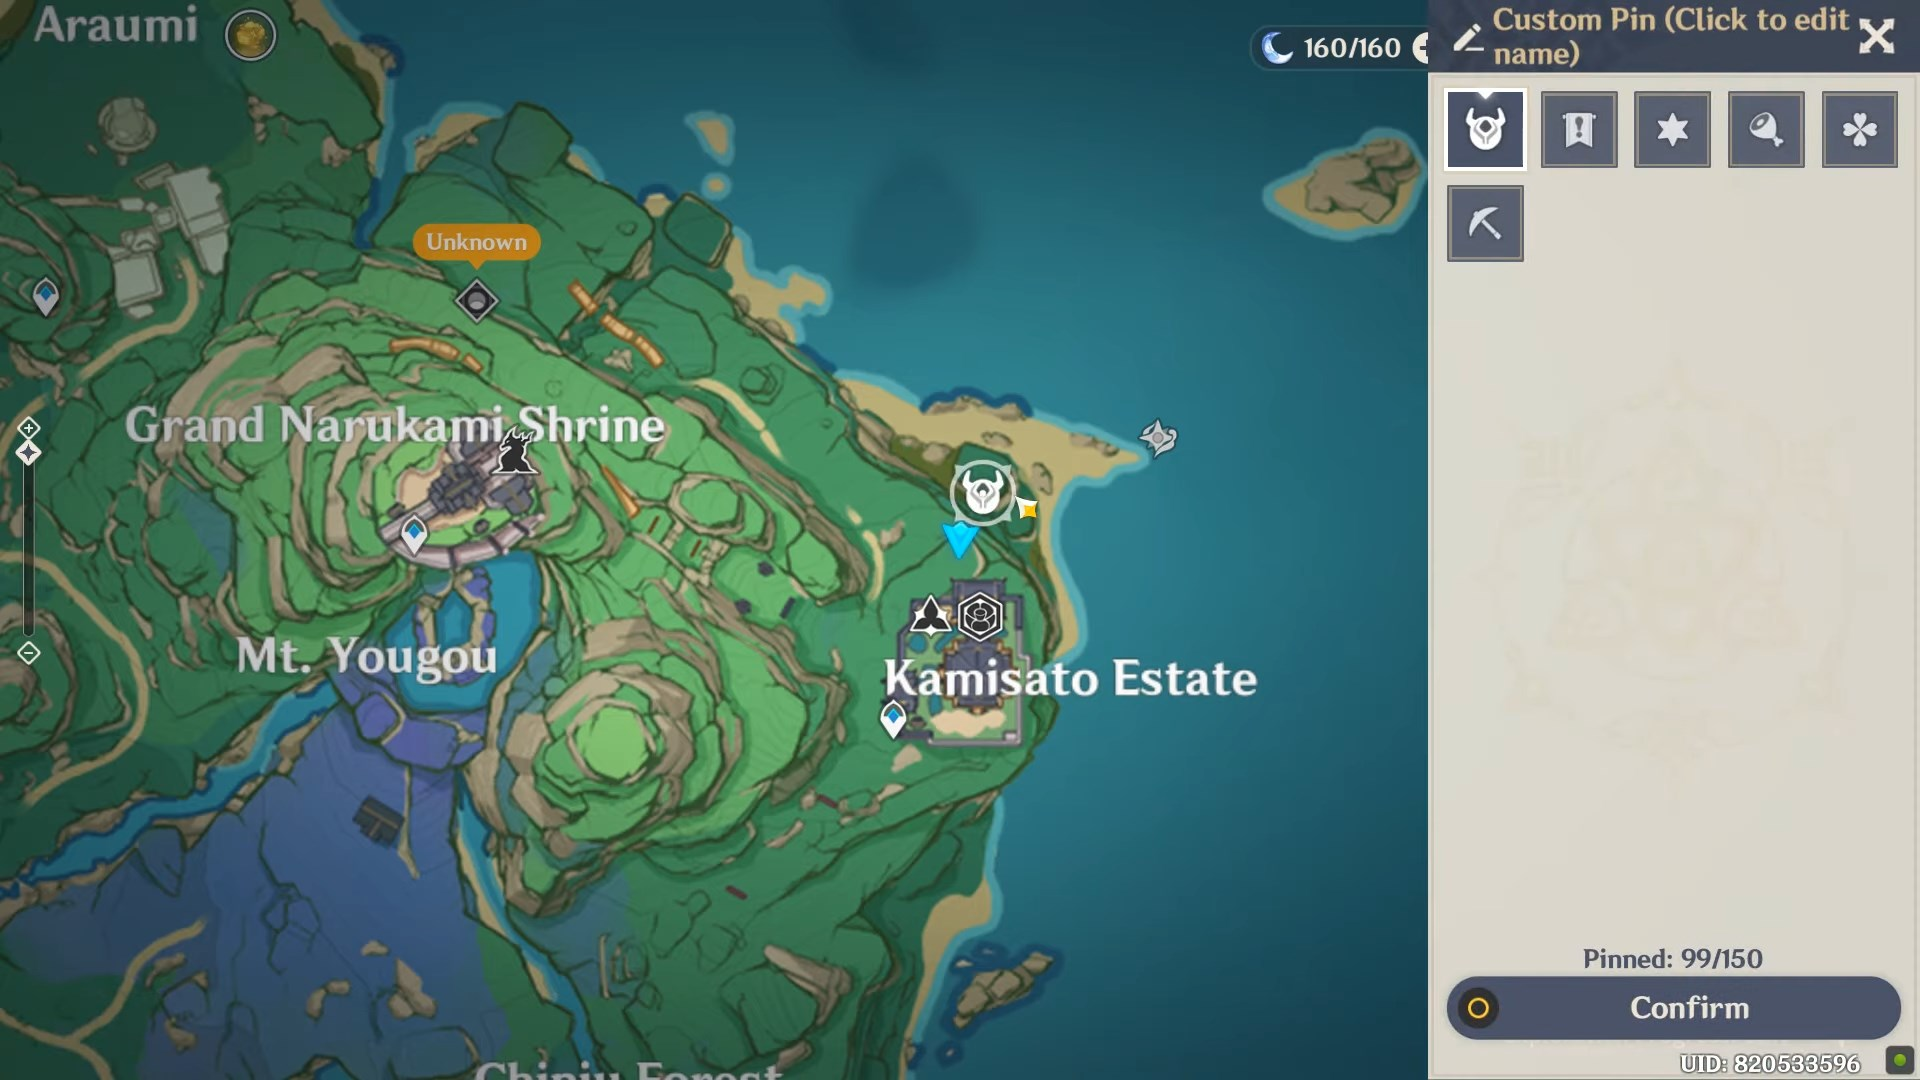 emplacement-barriere-domaine-kamisato